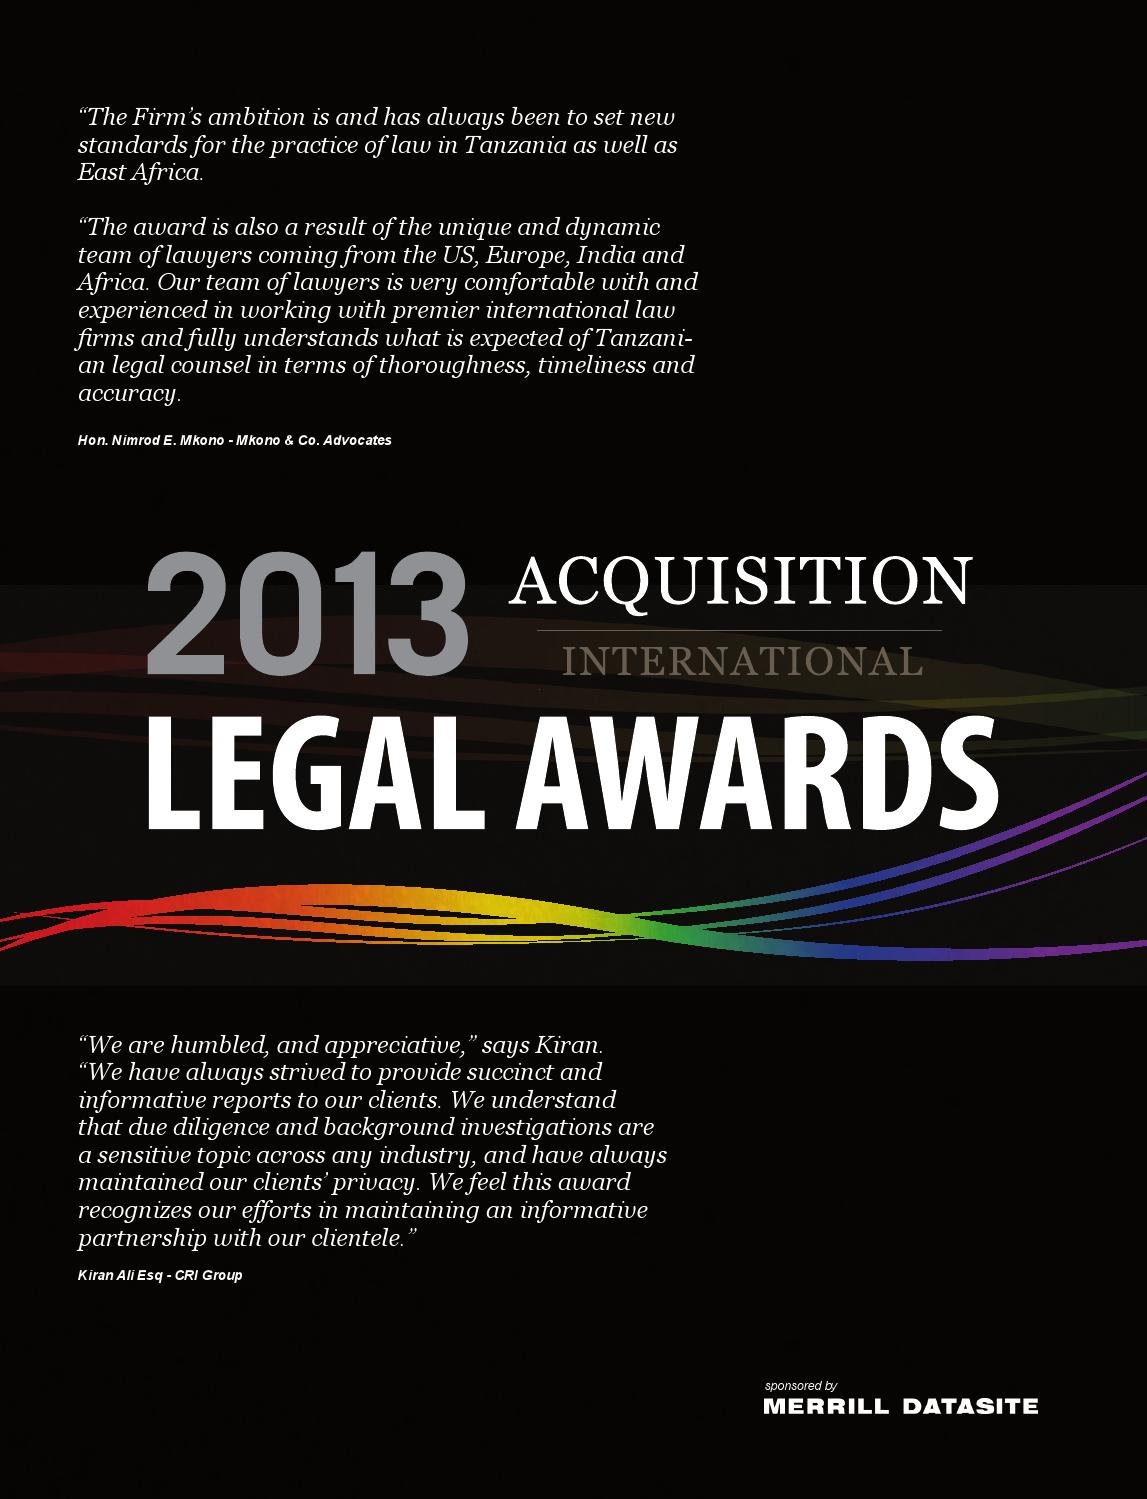 Legal awards 2013 by AI Global Media - issuu d582b8a97